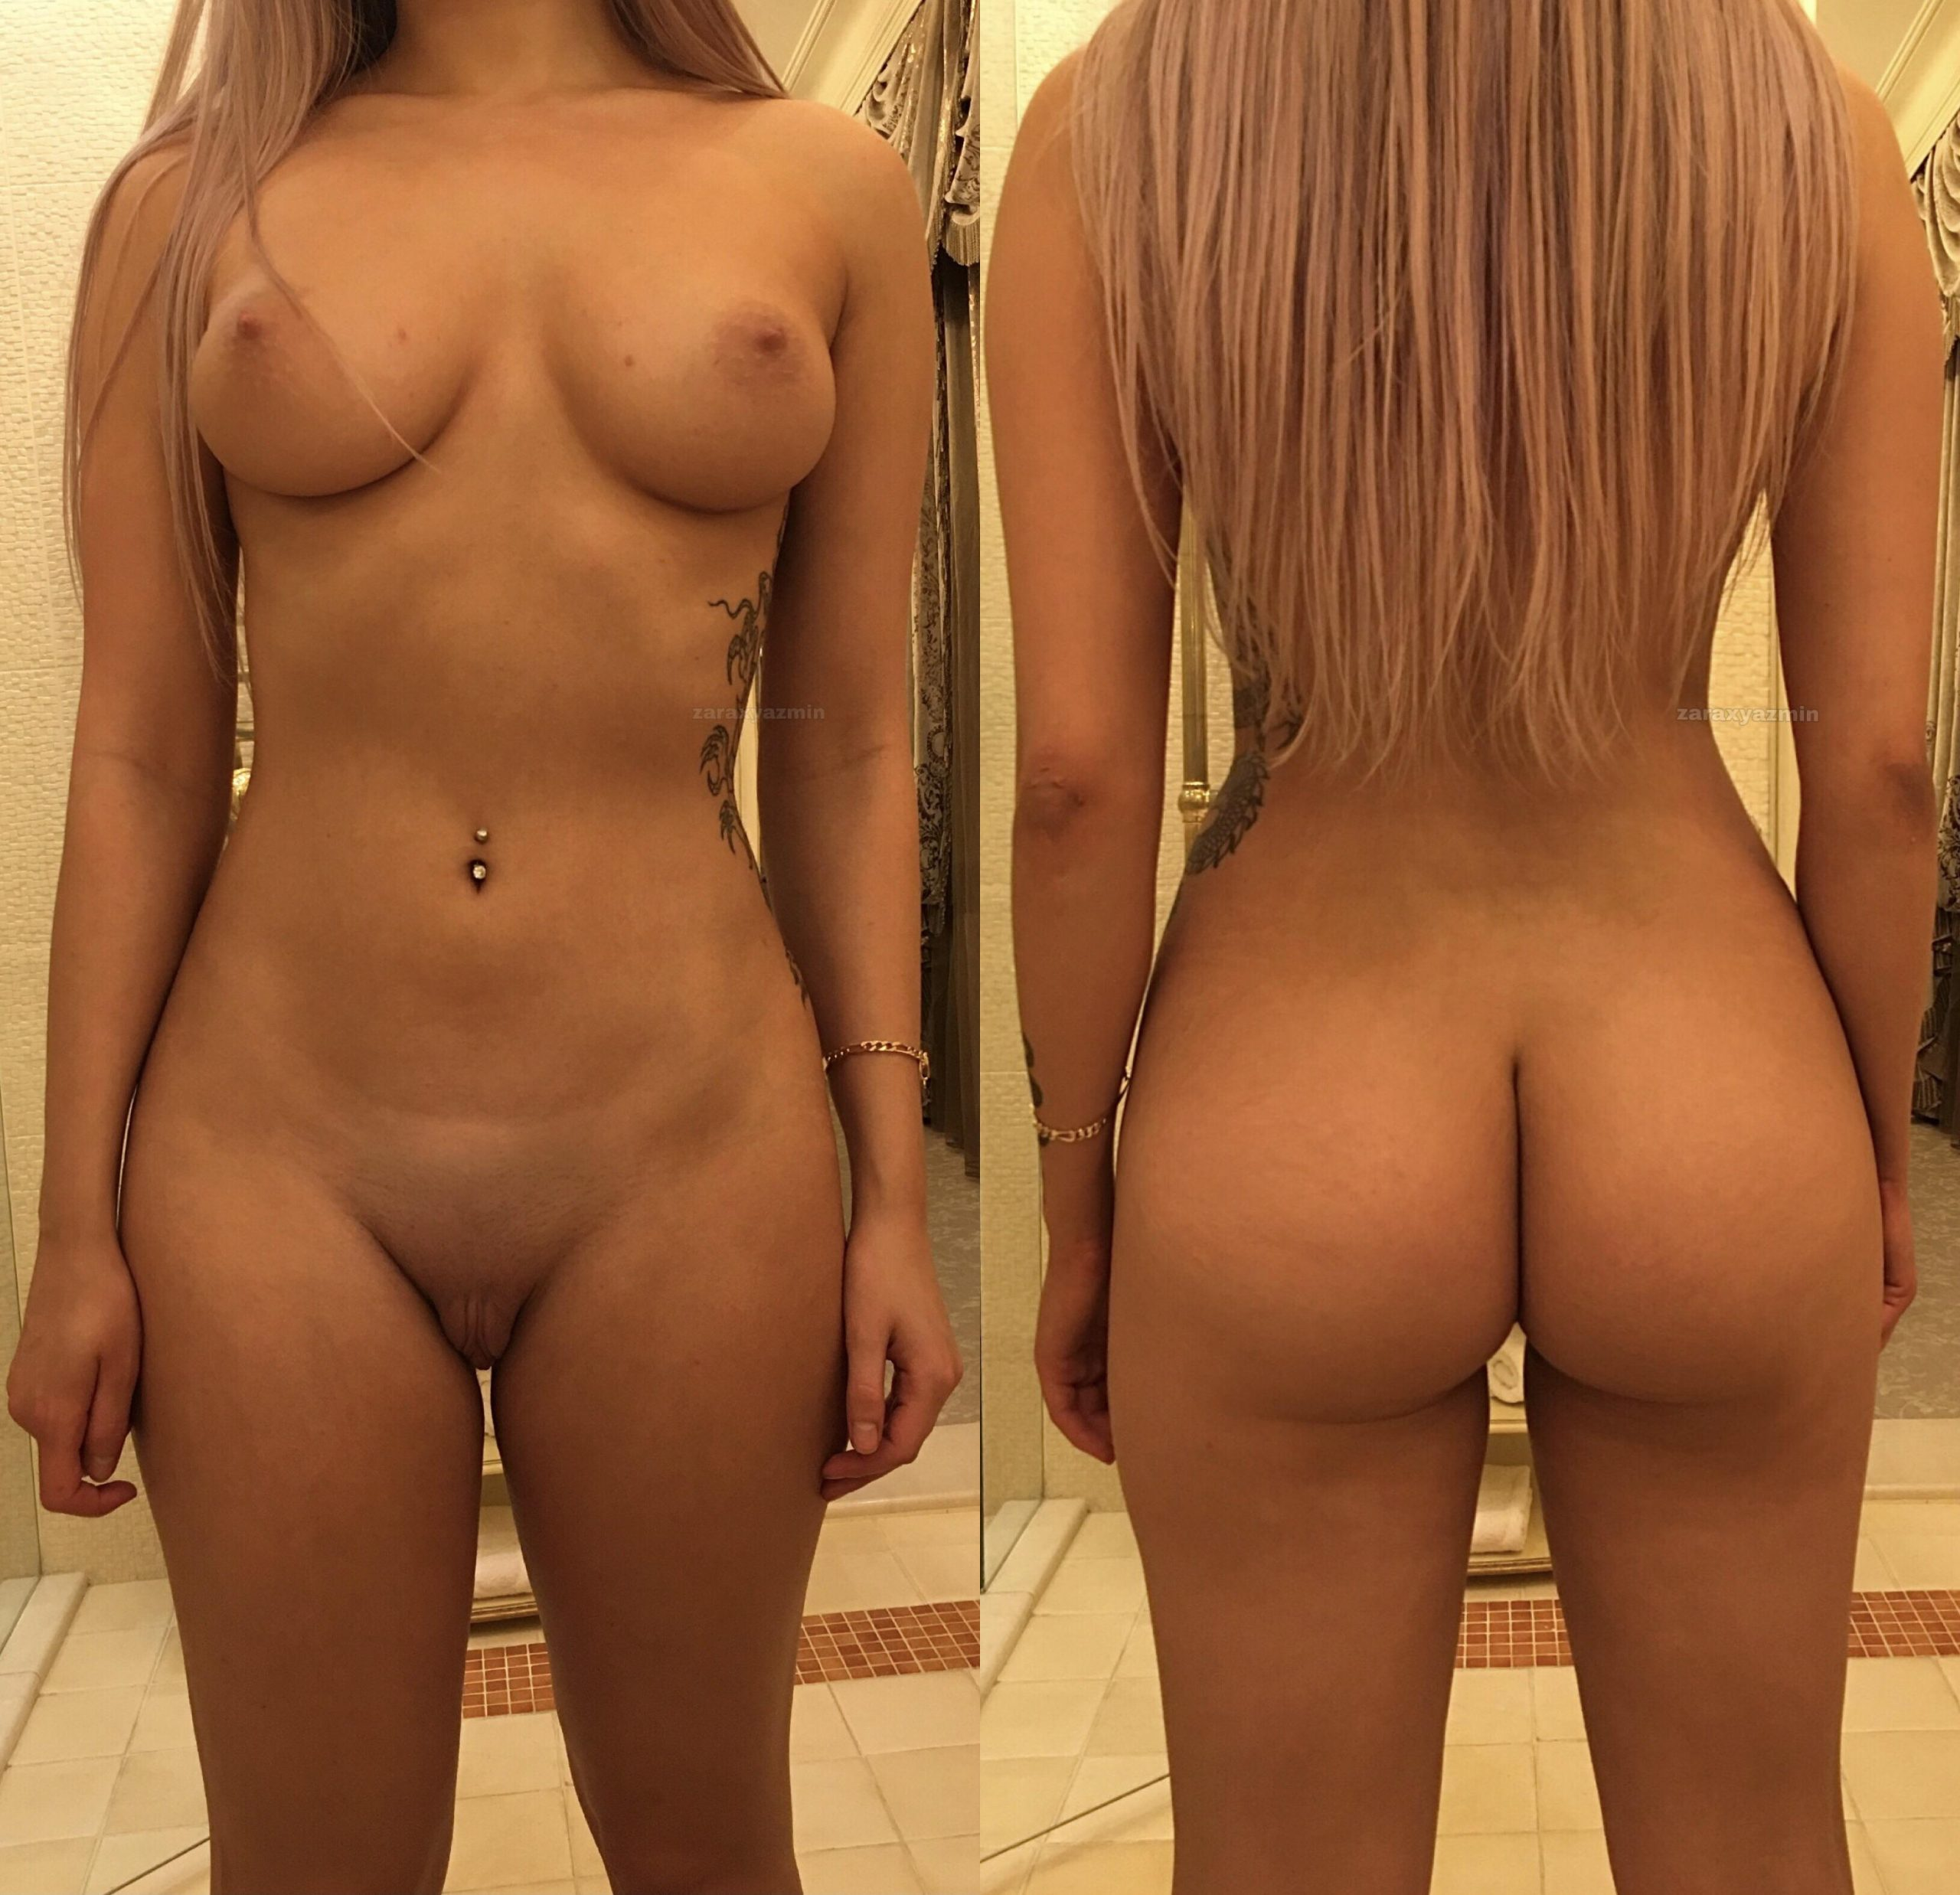 Do You Prefer The Front Or The Back? I'm Curious ?